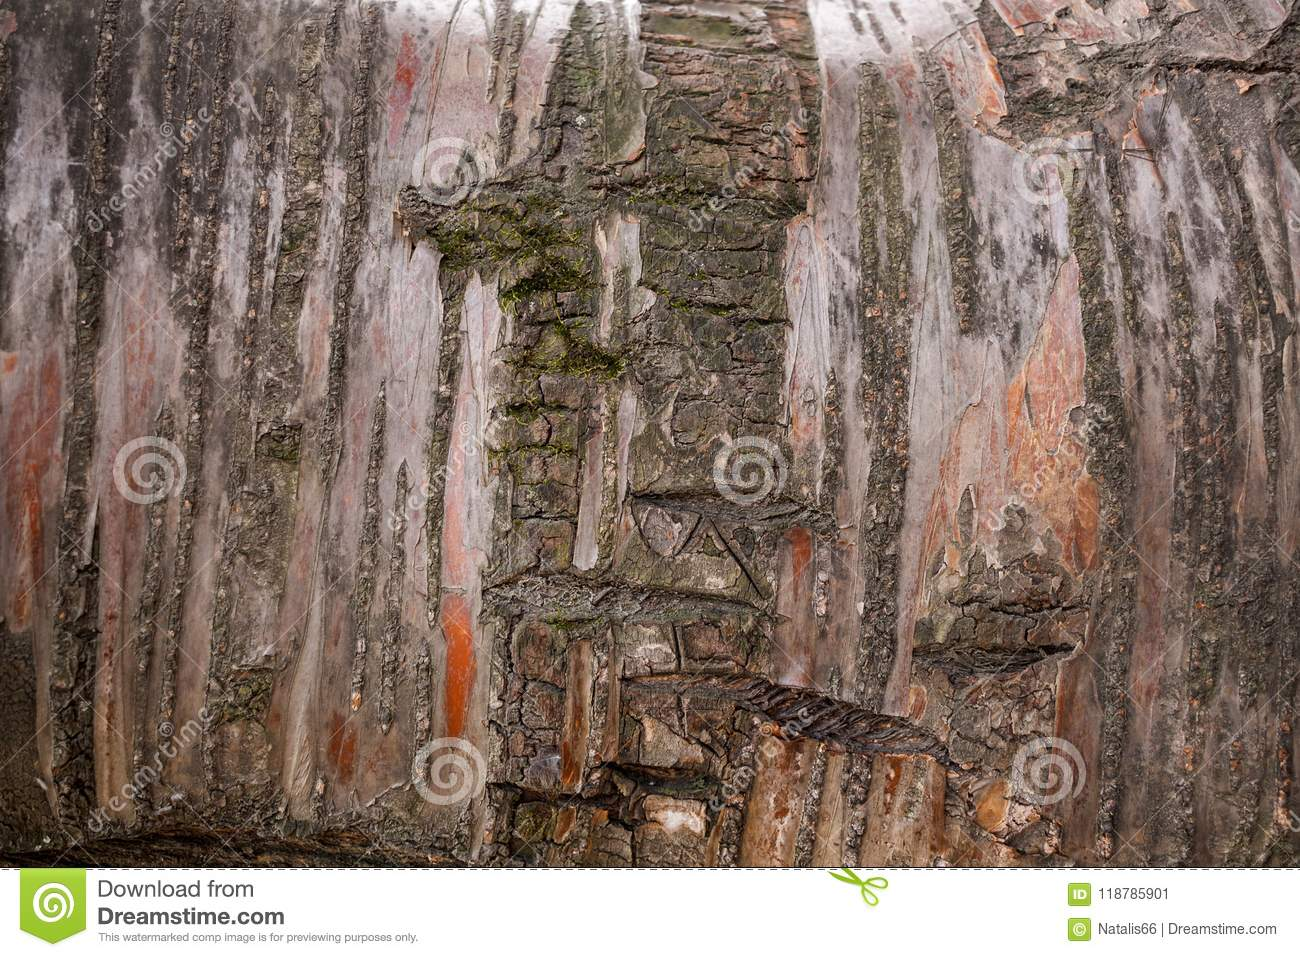 Uneven and nonuniform brown-red tree striped bark with lichen as background.